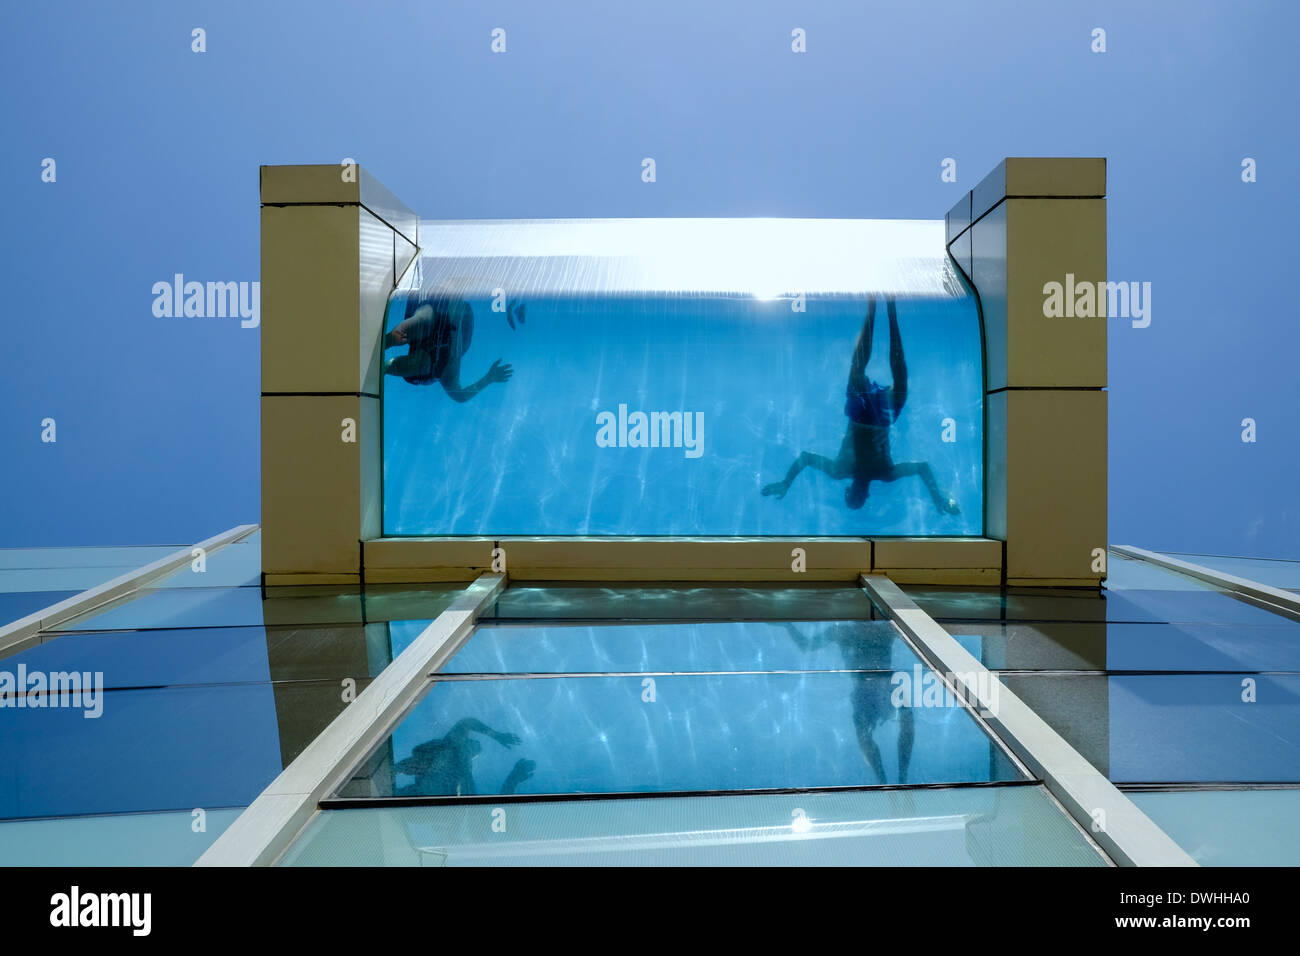 Elevated Pool tourist guests swimming in elevated glass swimming pool at stock